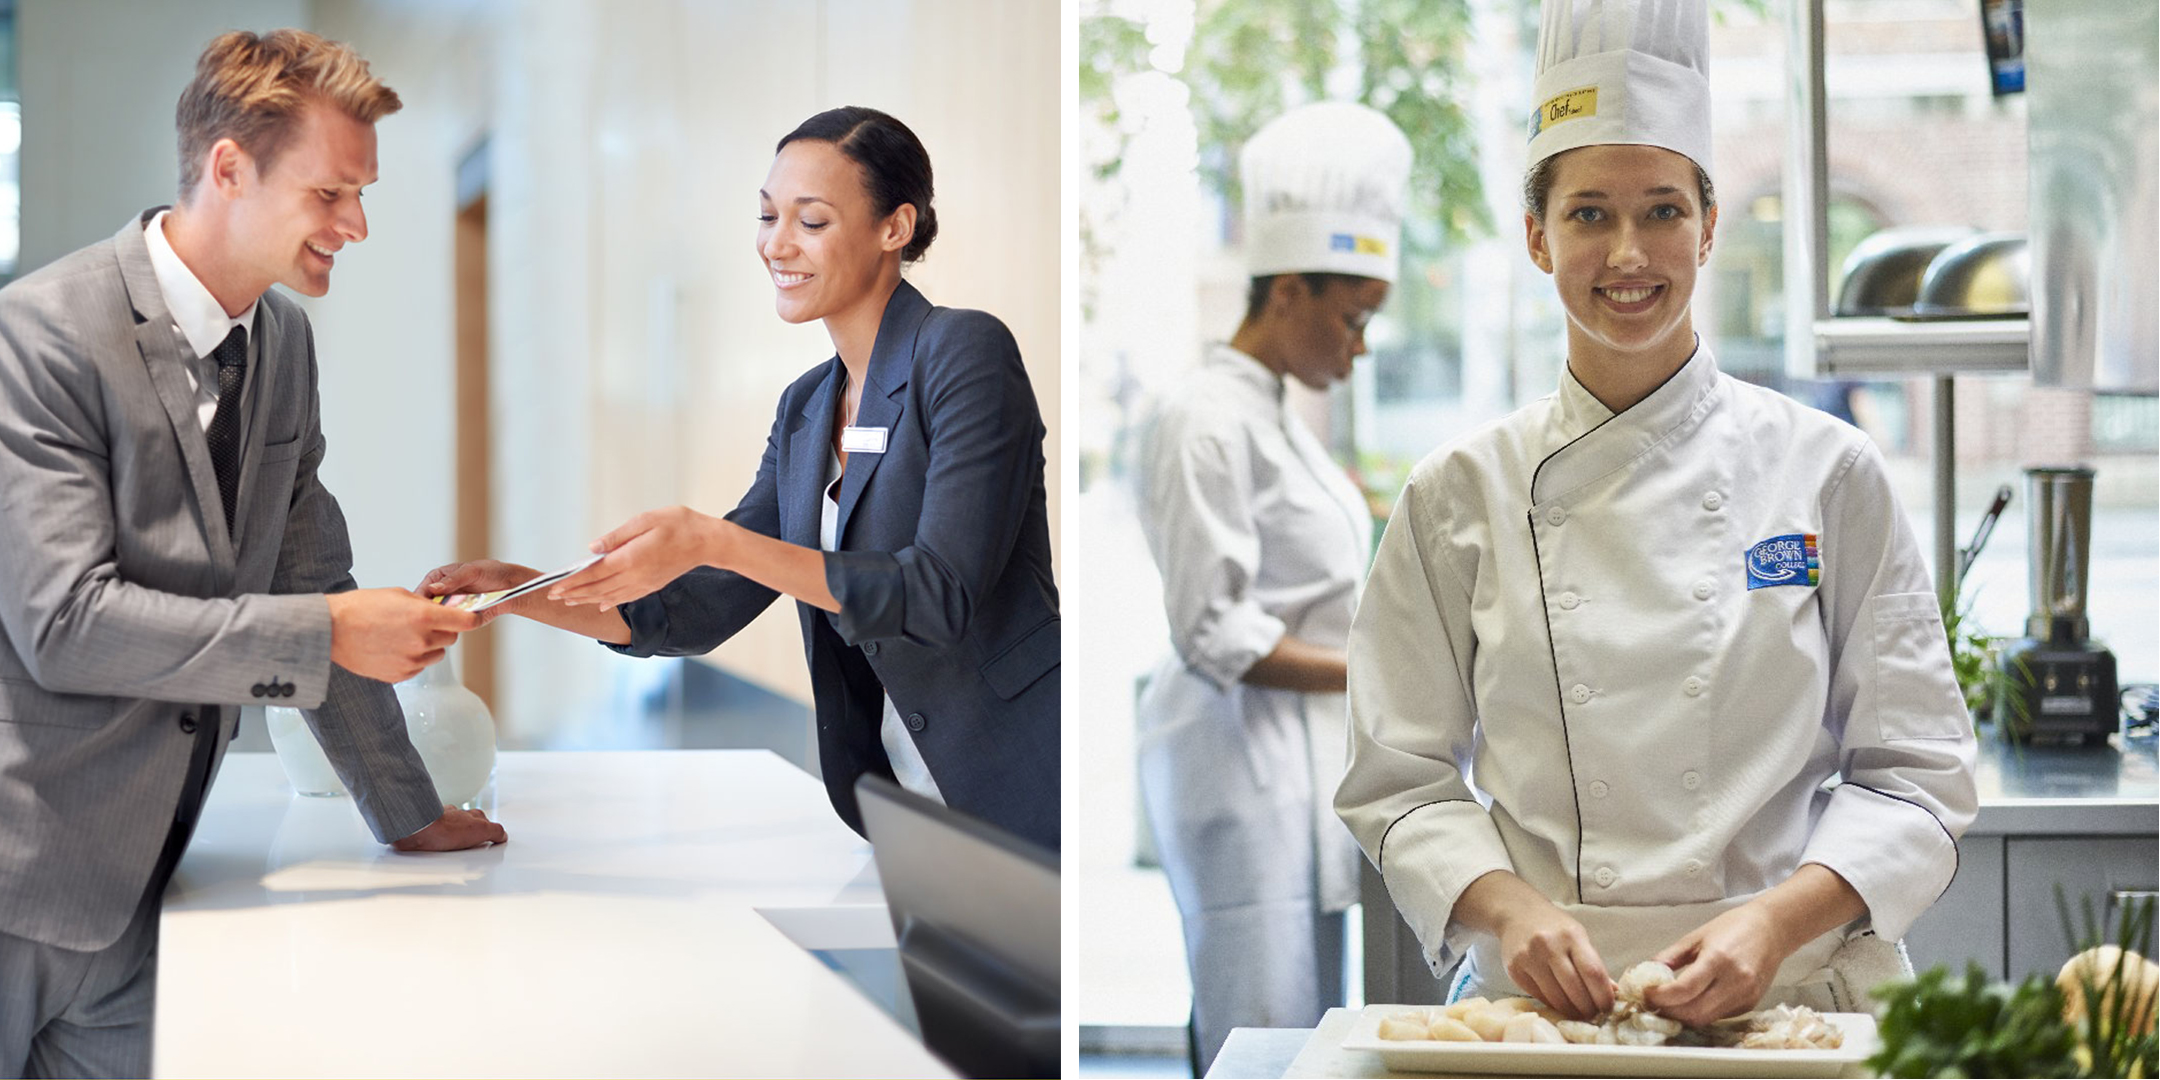 Hotel worker greeting guest beside a culinary student